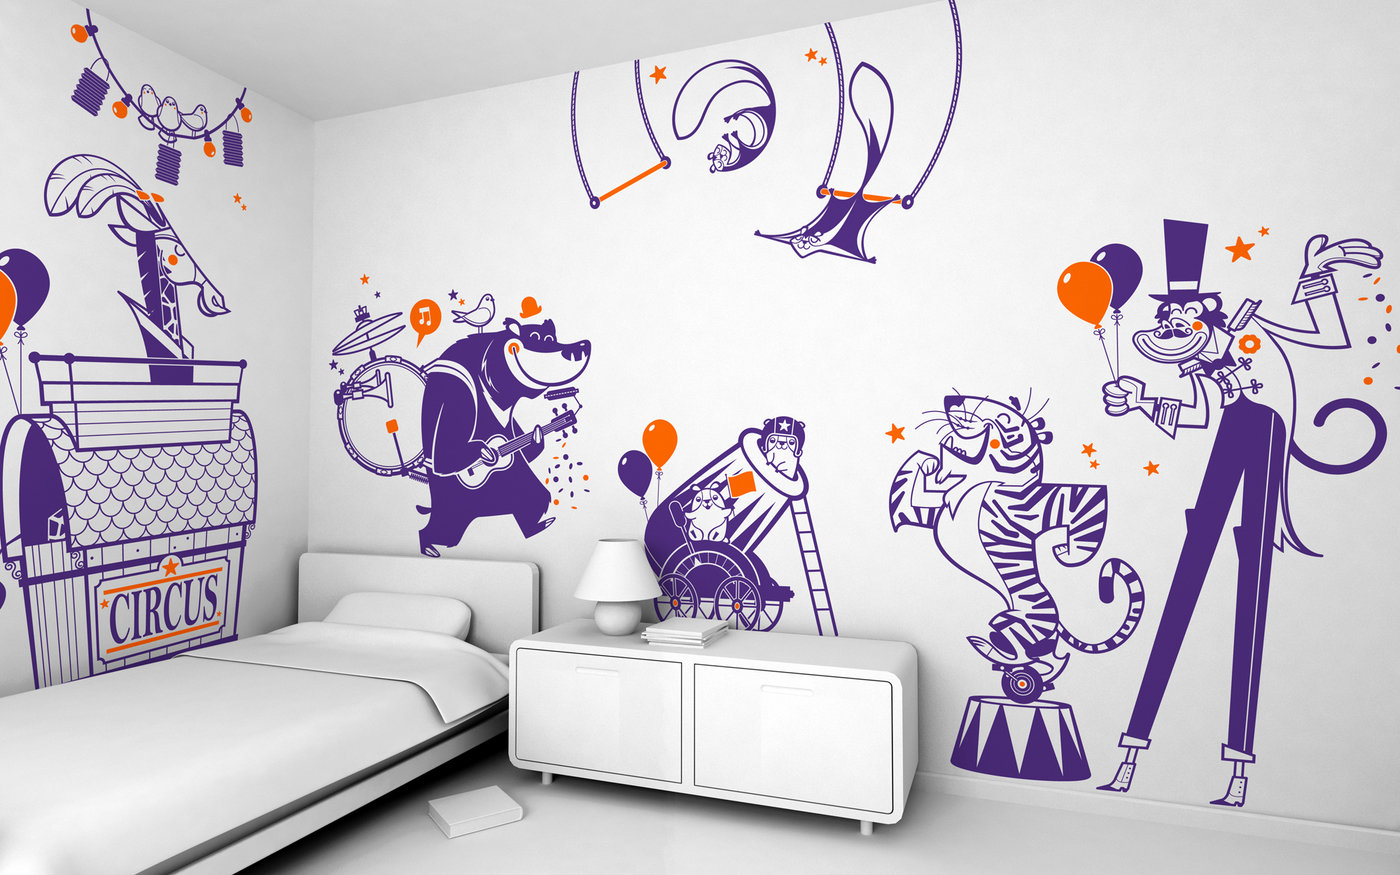 Giant kids wall decals by e glue studio at coroflot happy circus pack of wall stickers for baby nursery or kids room amipublicfo Gallery